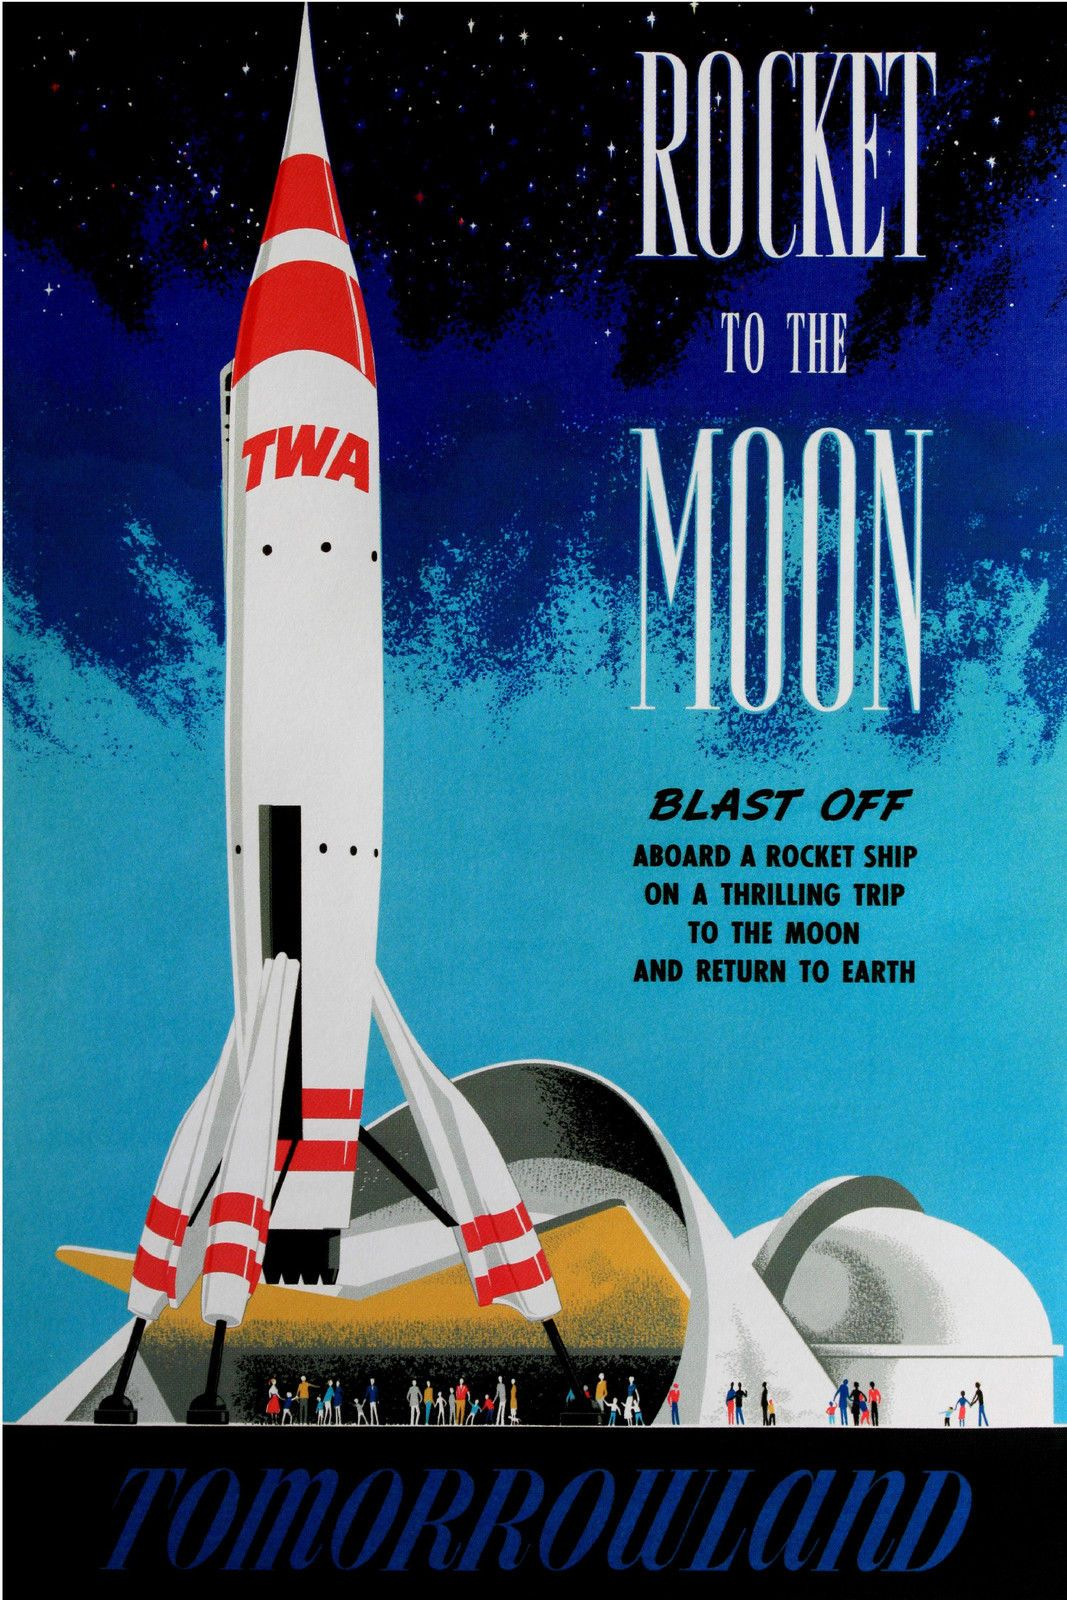 Http I Ebayimg Com T Vintage Disneyland Tomorrowland Rock To The Moon 1955 Poster 00 S Mtywmfgxmdy3 Z T Iaaox Retro Disney Vintage Disneyland Disney Posters